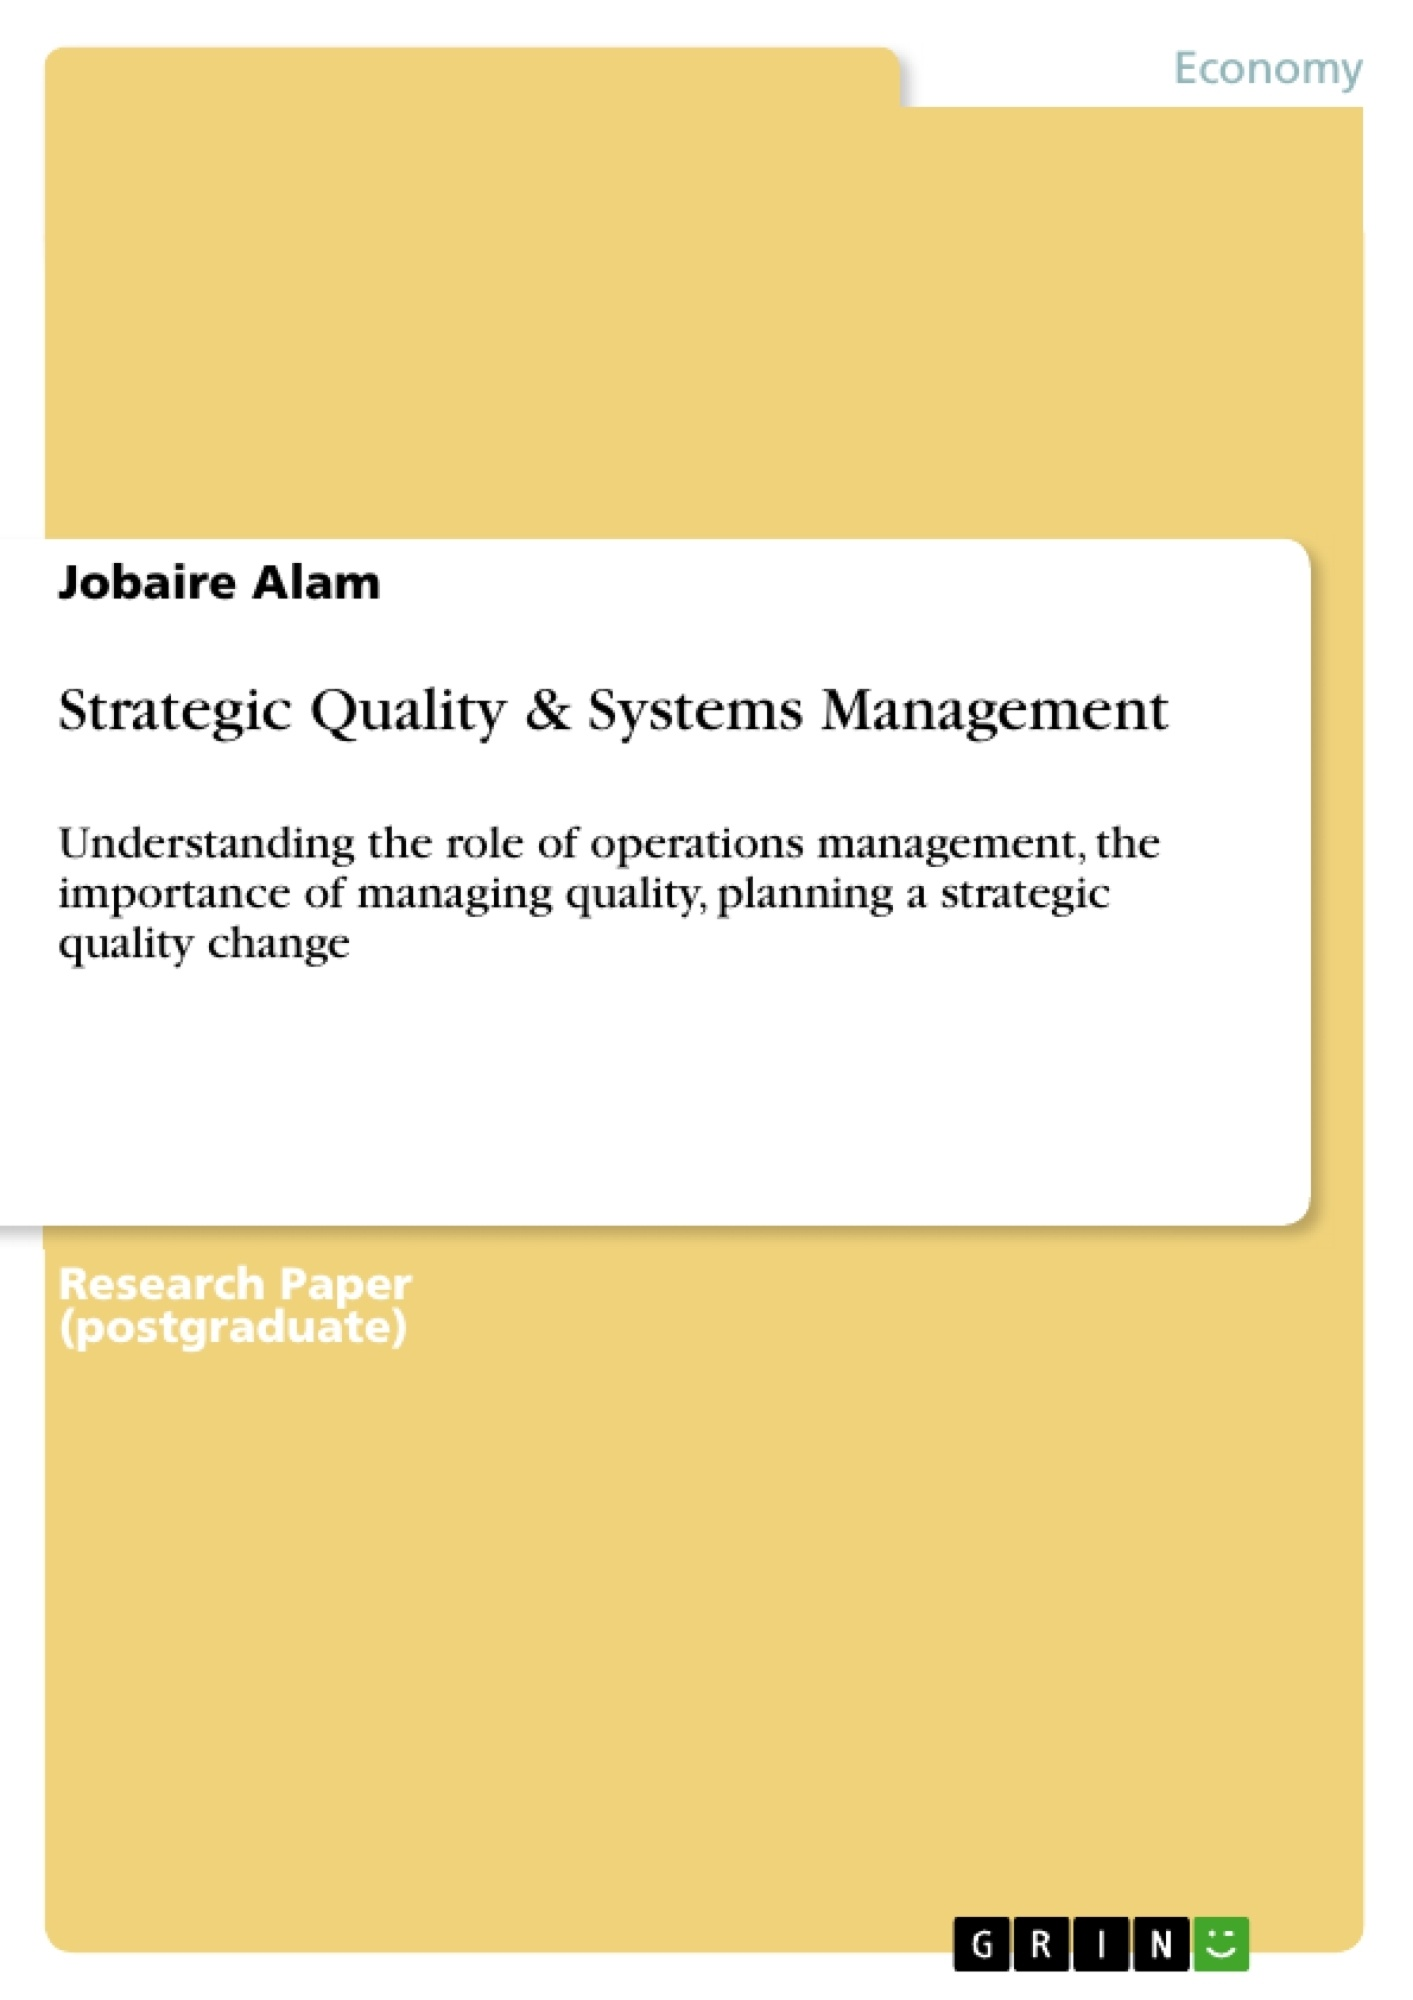 Management master quality thesis